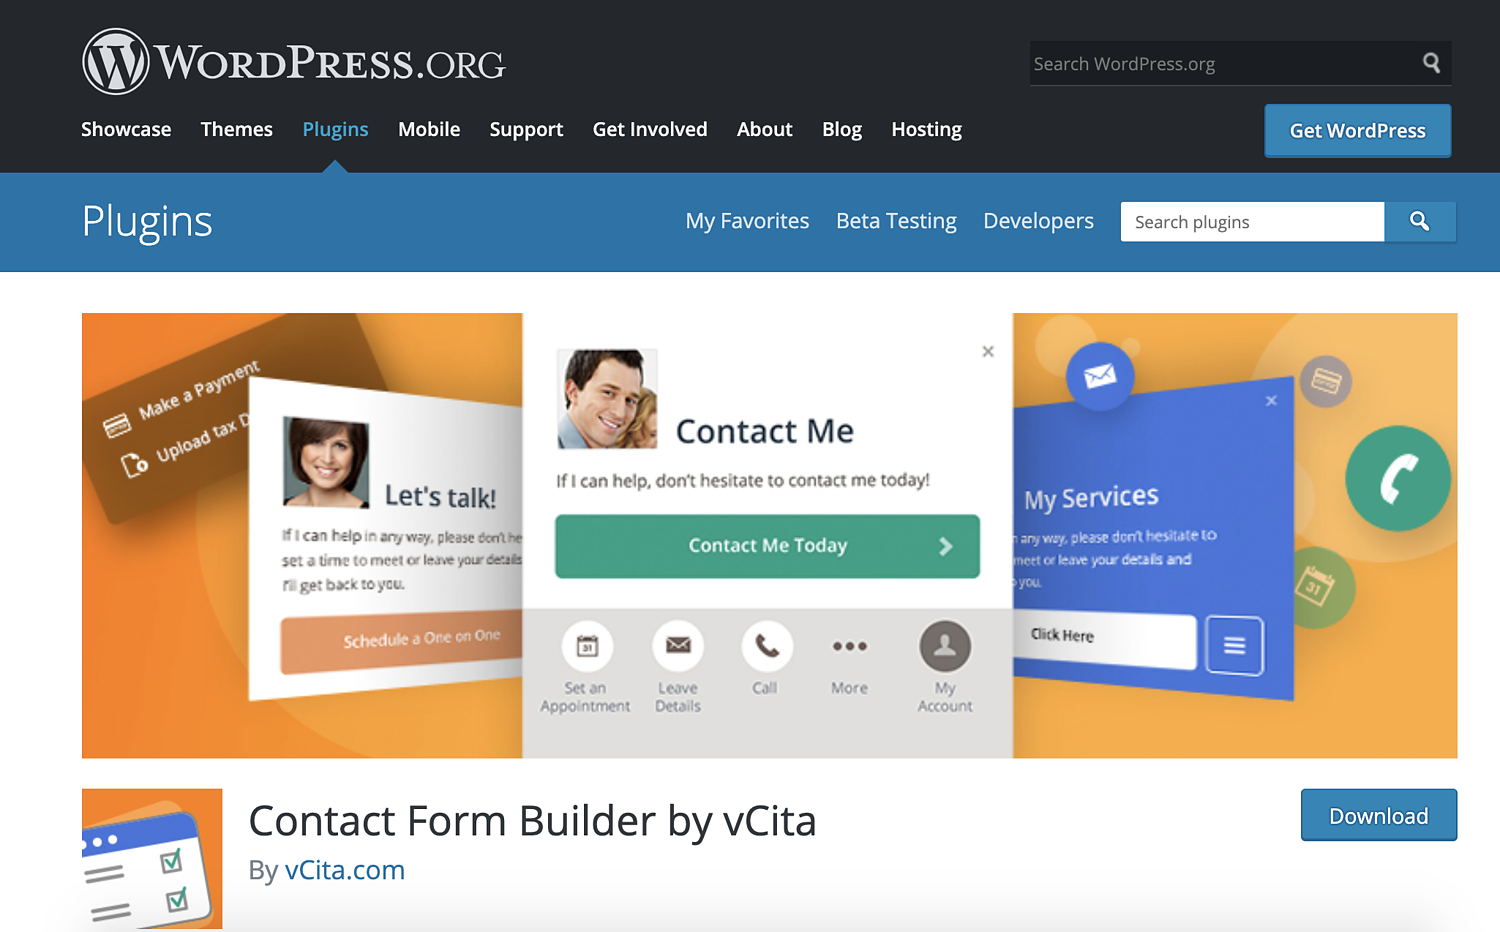 contact form builder plugin by vcita for wordpress